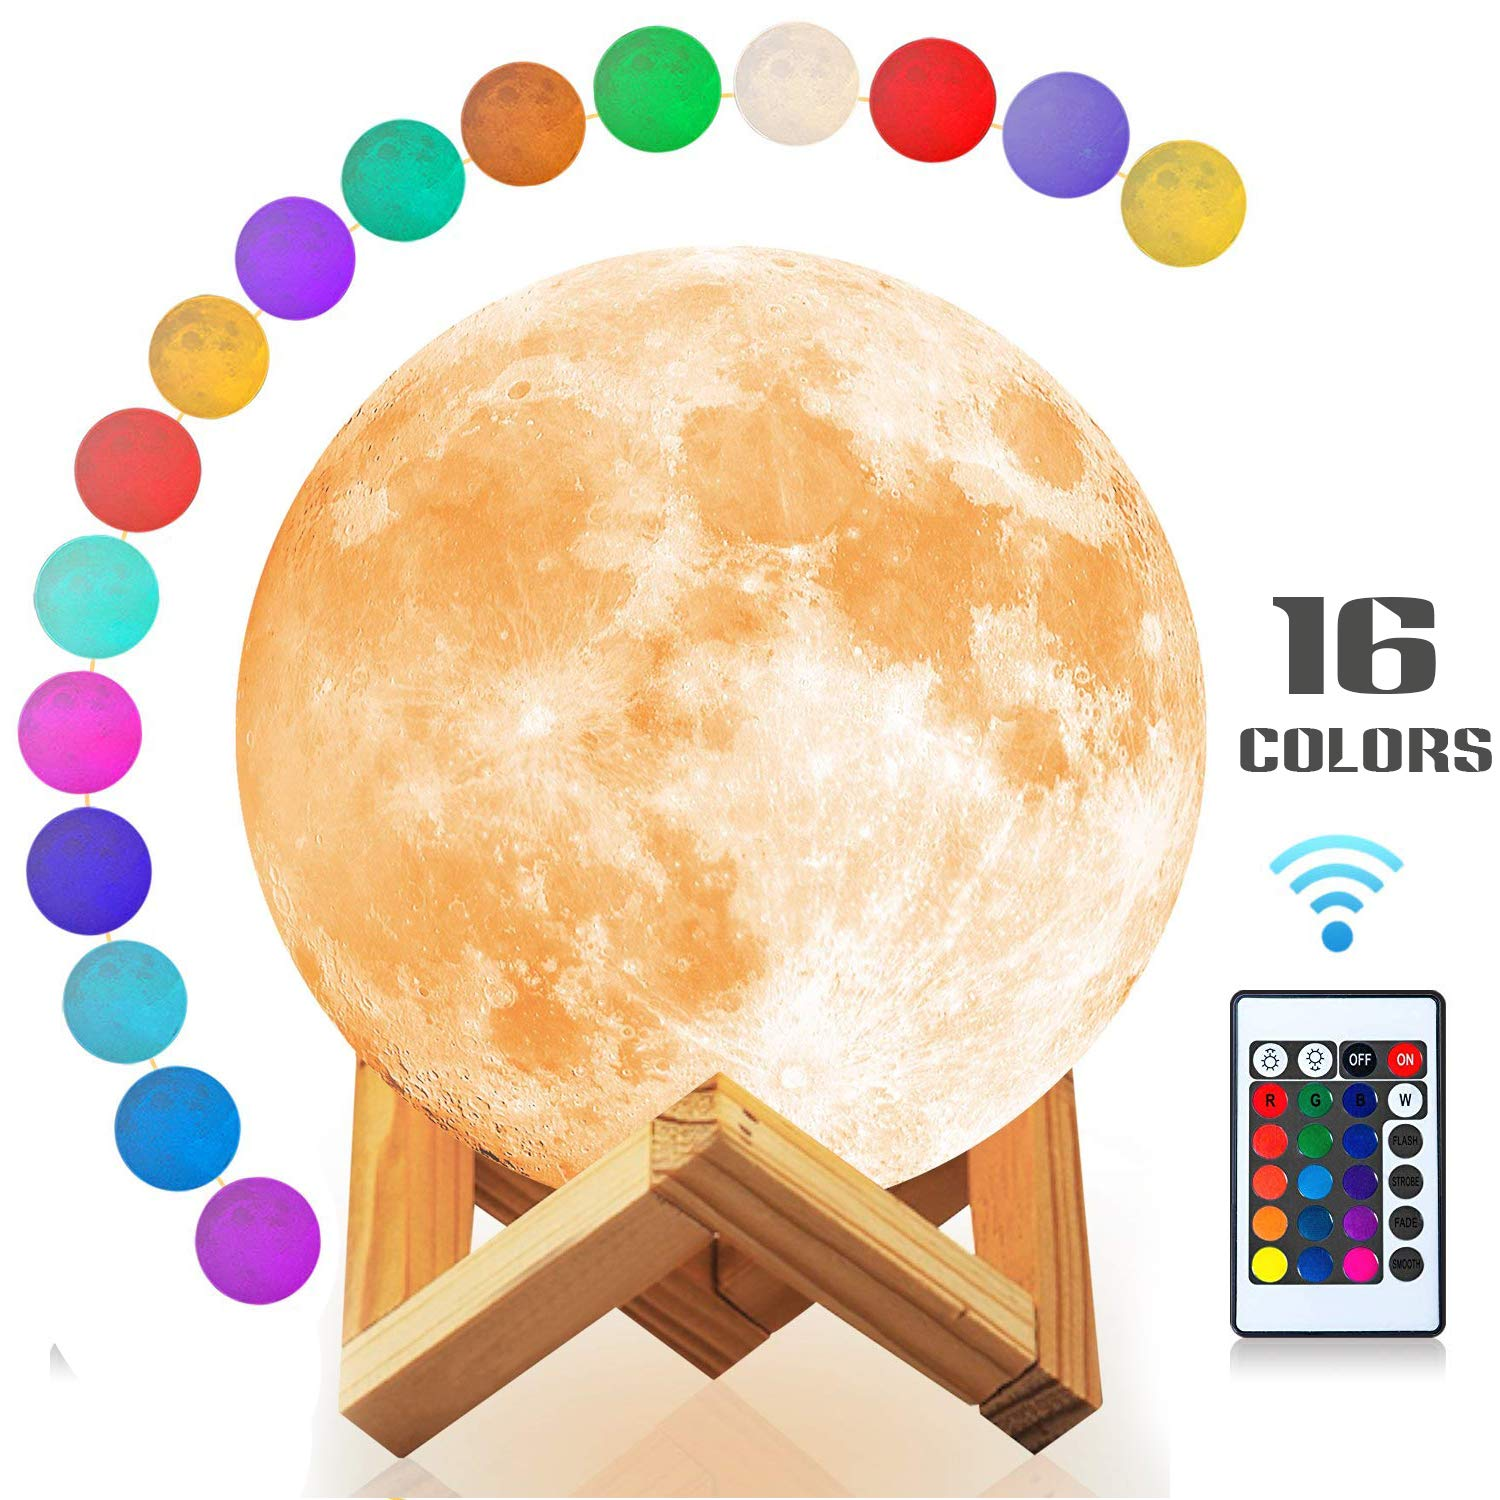 3D Moon Lamp with Stand Moon Light Touch Control Baby Night Light 16 Colors LED 3D Print Moon Night Light Remote Control USB Rechargable Moon Lamp for Kids Halloween Christmas (5.9 inch / 16 Colors)